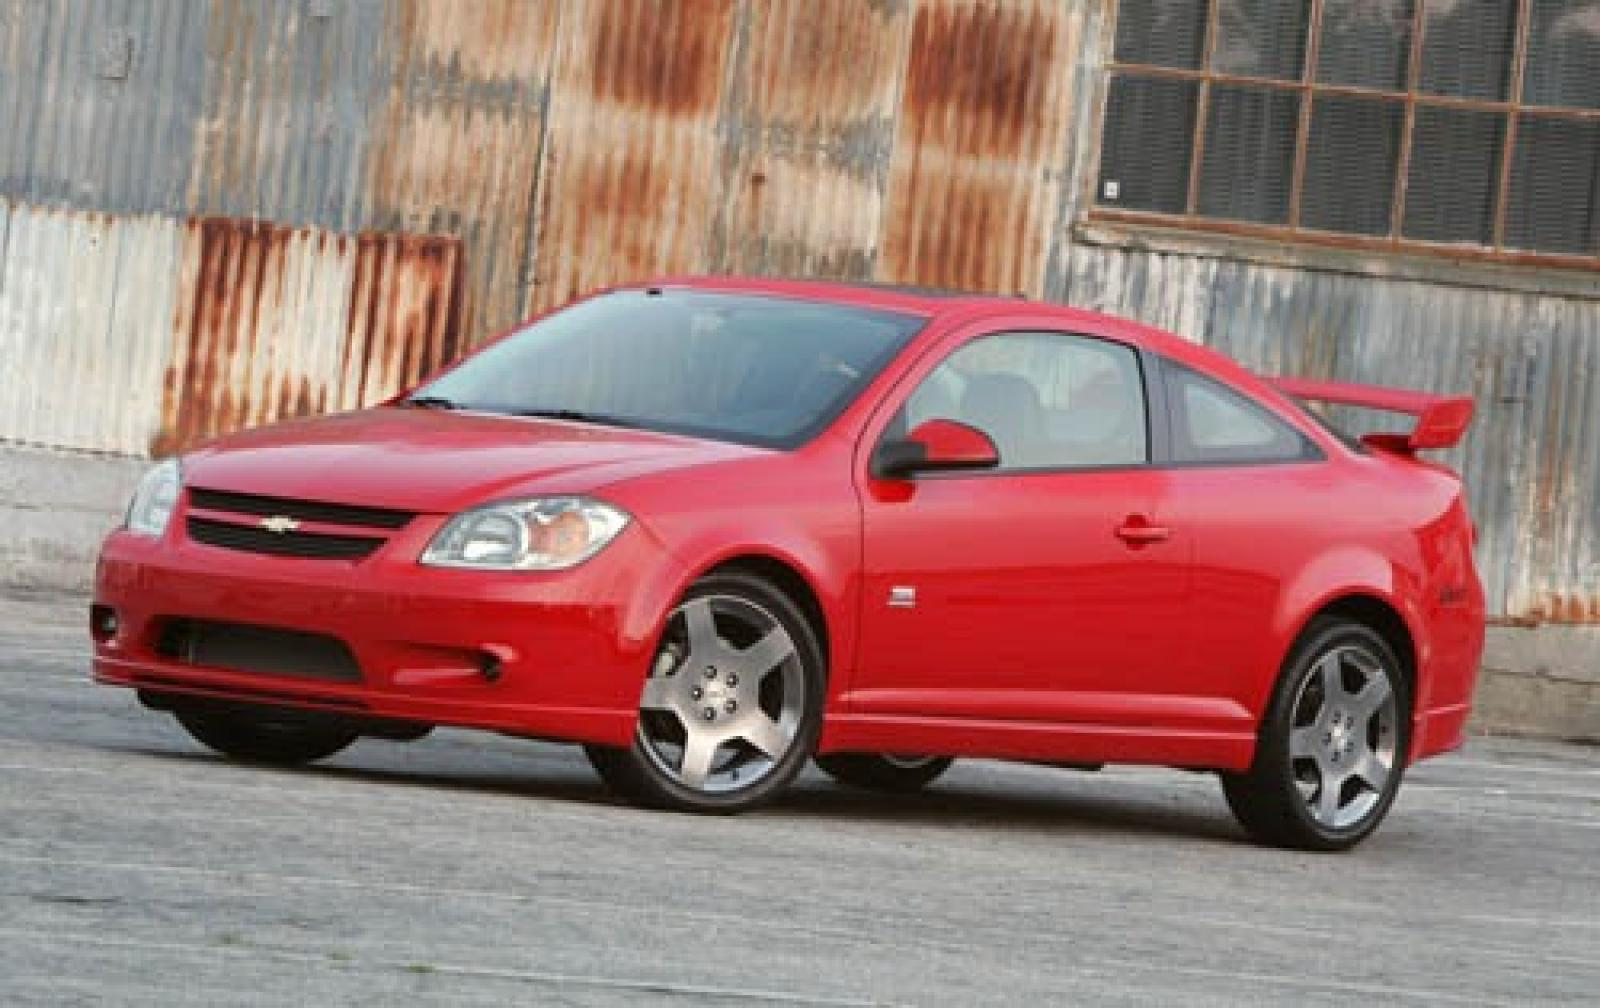 2006 chevrolet cobalt information and photos zombiedrive. Black Bedroom Furniture Sets. Home Design Ideas